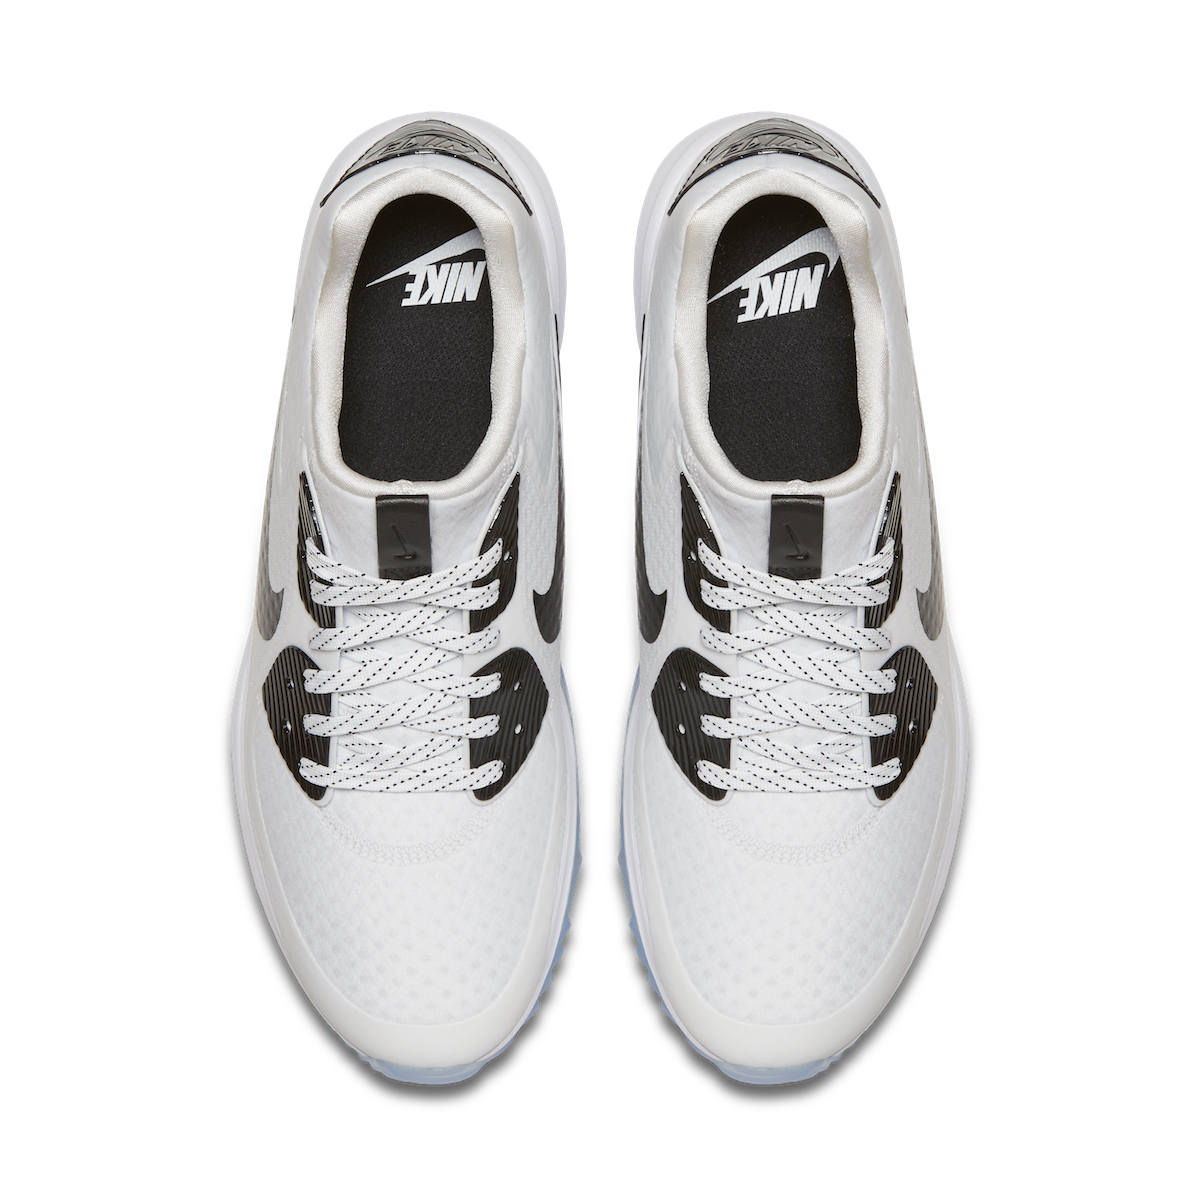 new product 61592 37dcb The Nike Air Max 90 IT is Meant for Golf - WearTesters